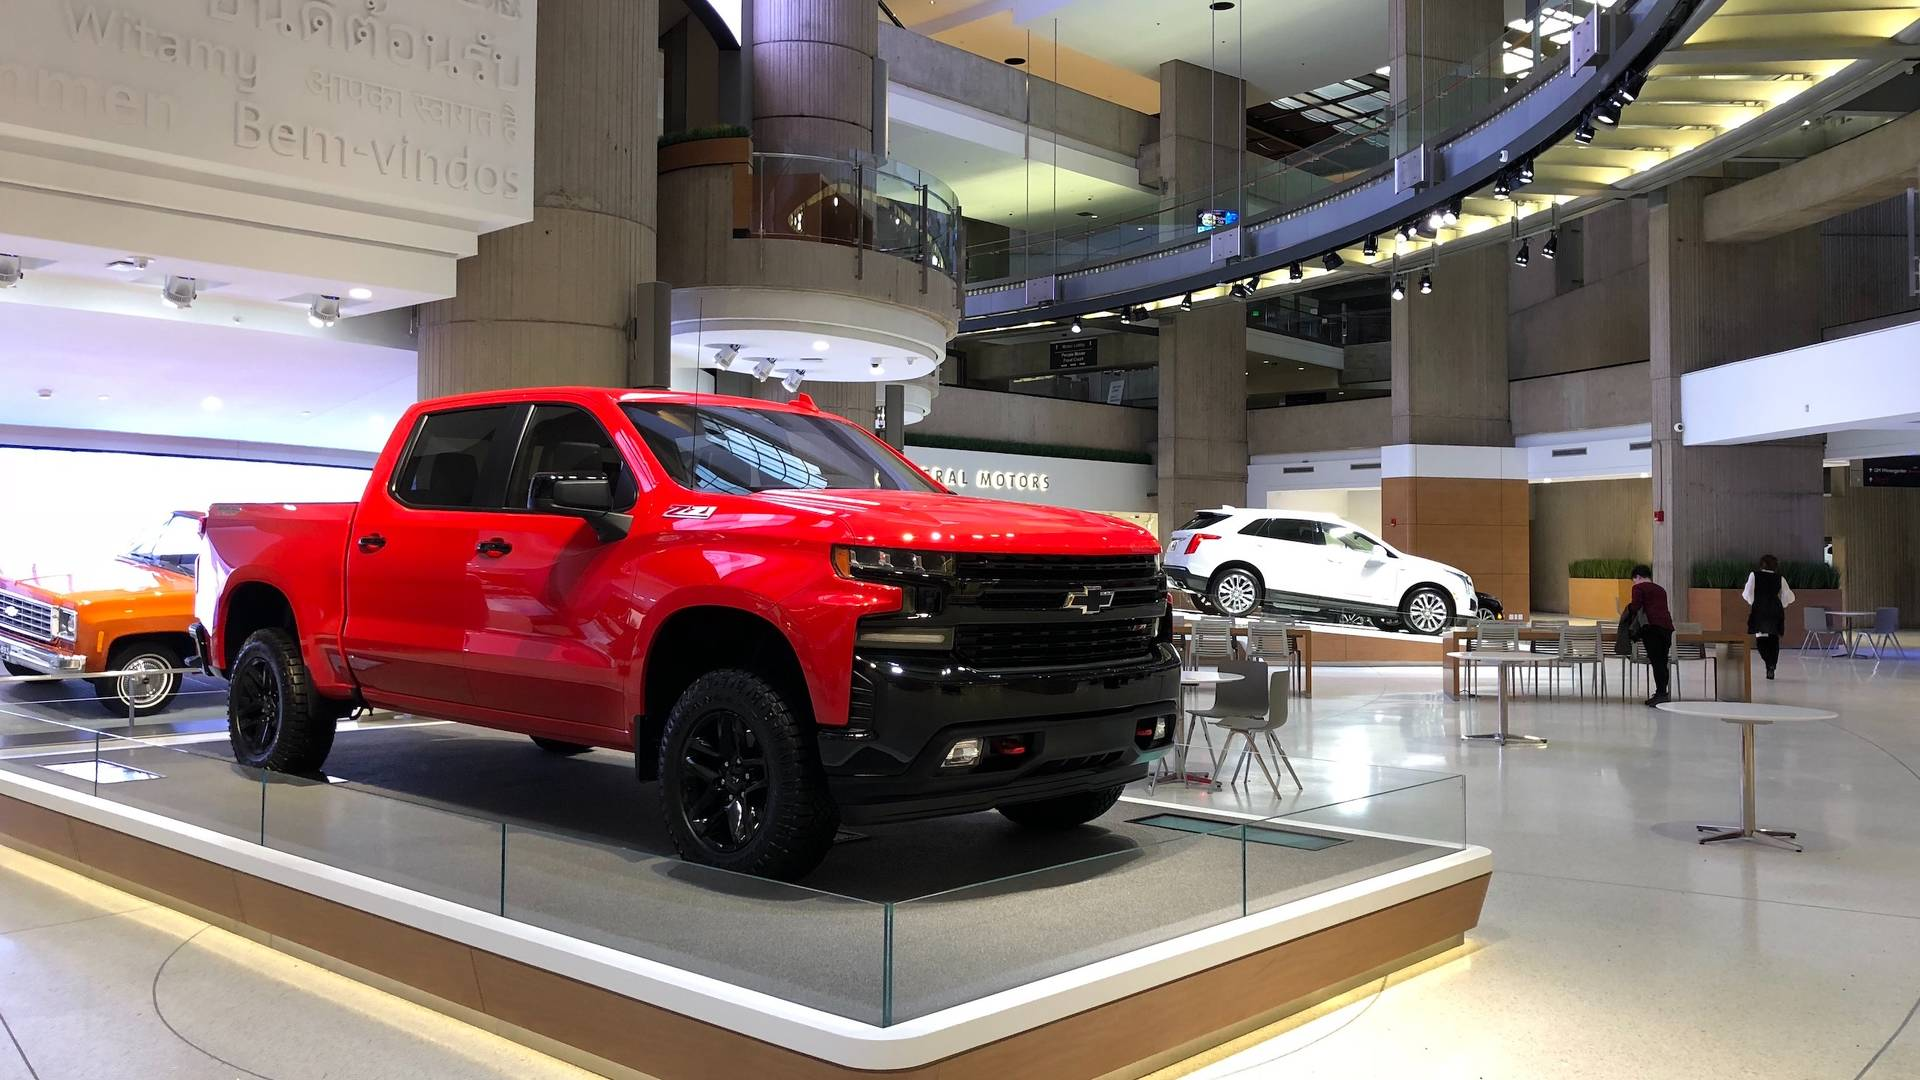 Surprise 2019 Chevy Silverado Available With 310 HP Turbo Four